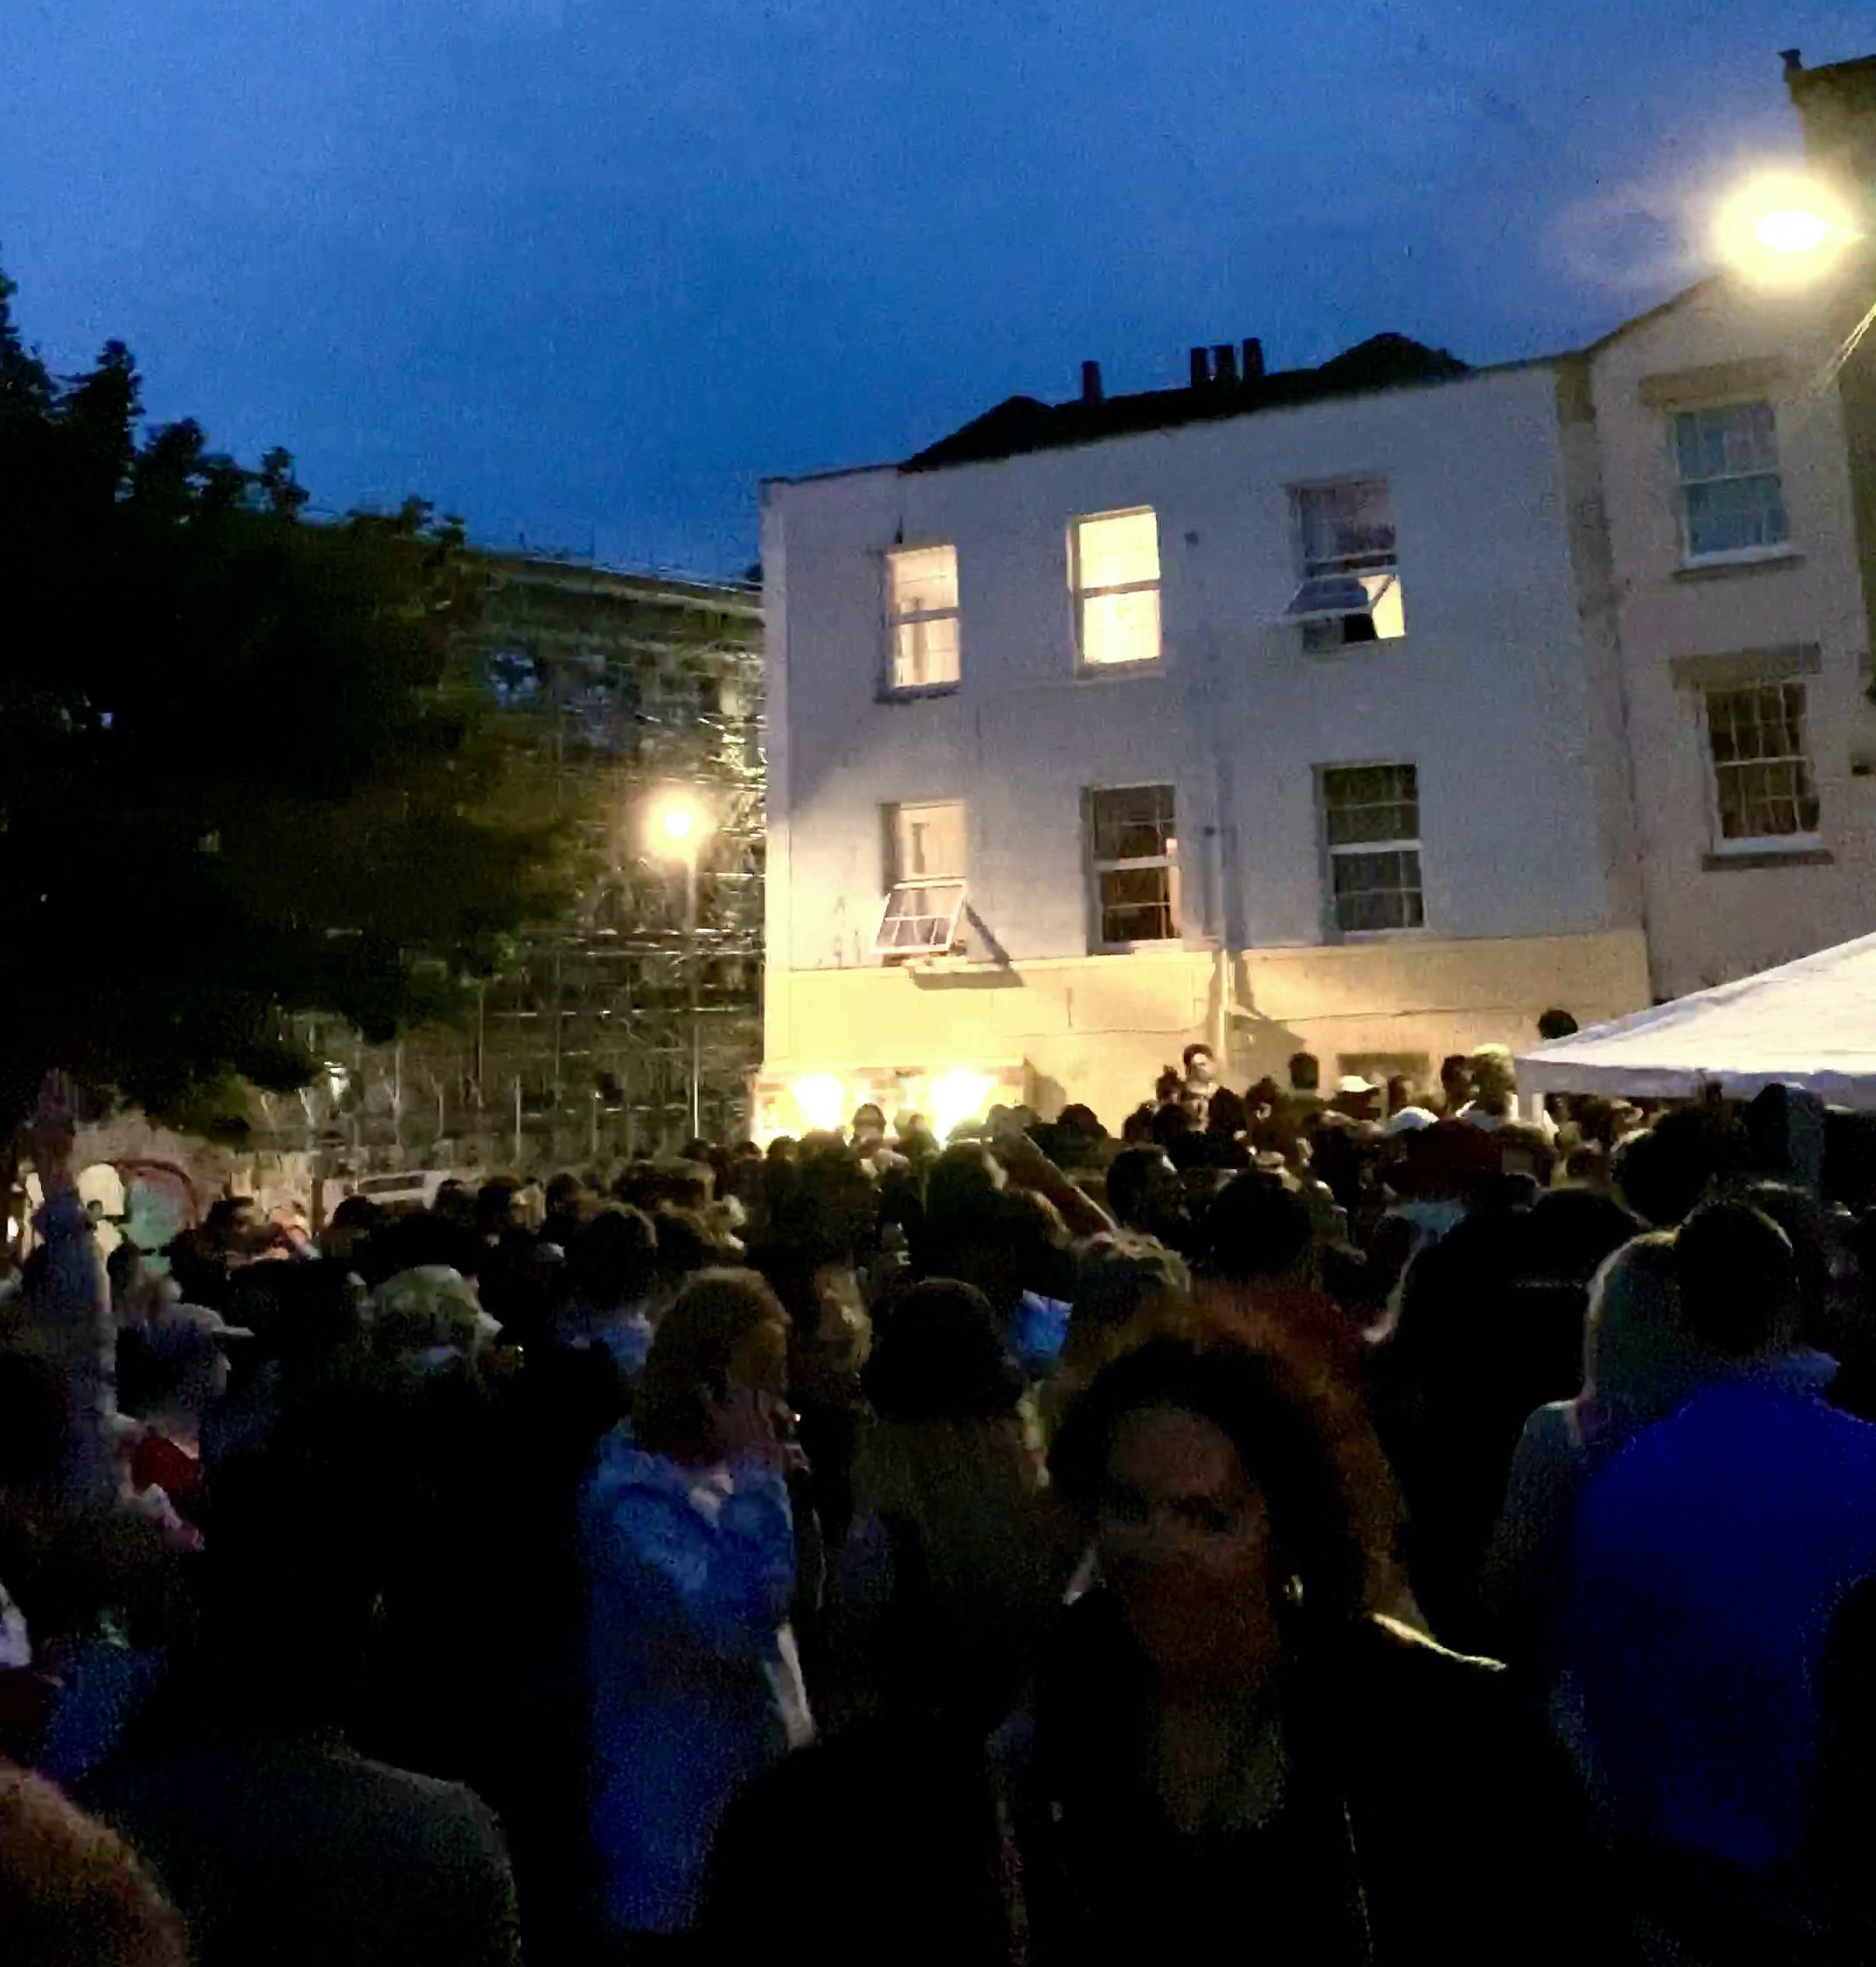 The huge crowd drank and danced the night away in front of a DJ playing dub music at the impromptu event in Stokes Croft, Bristol. (SWNS)